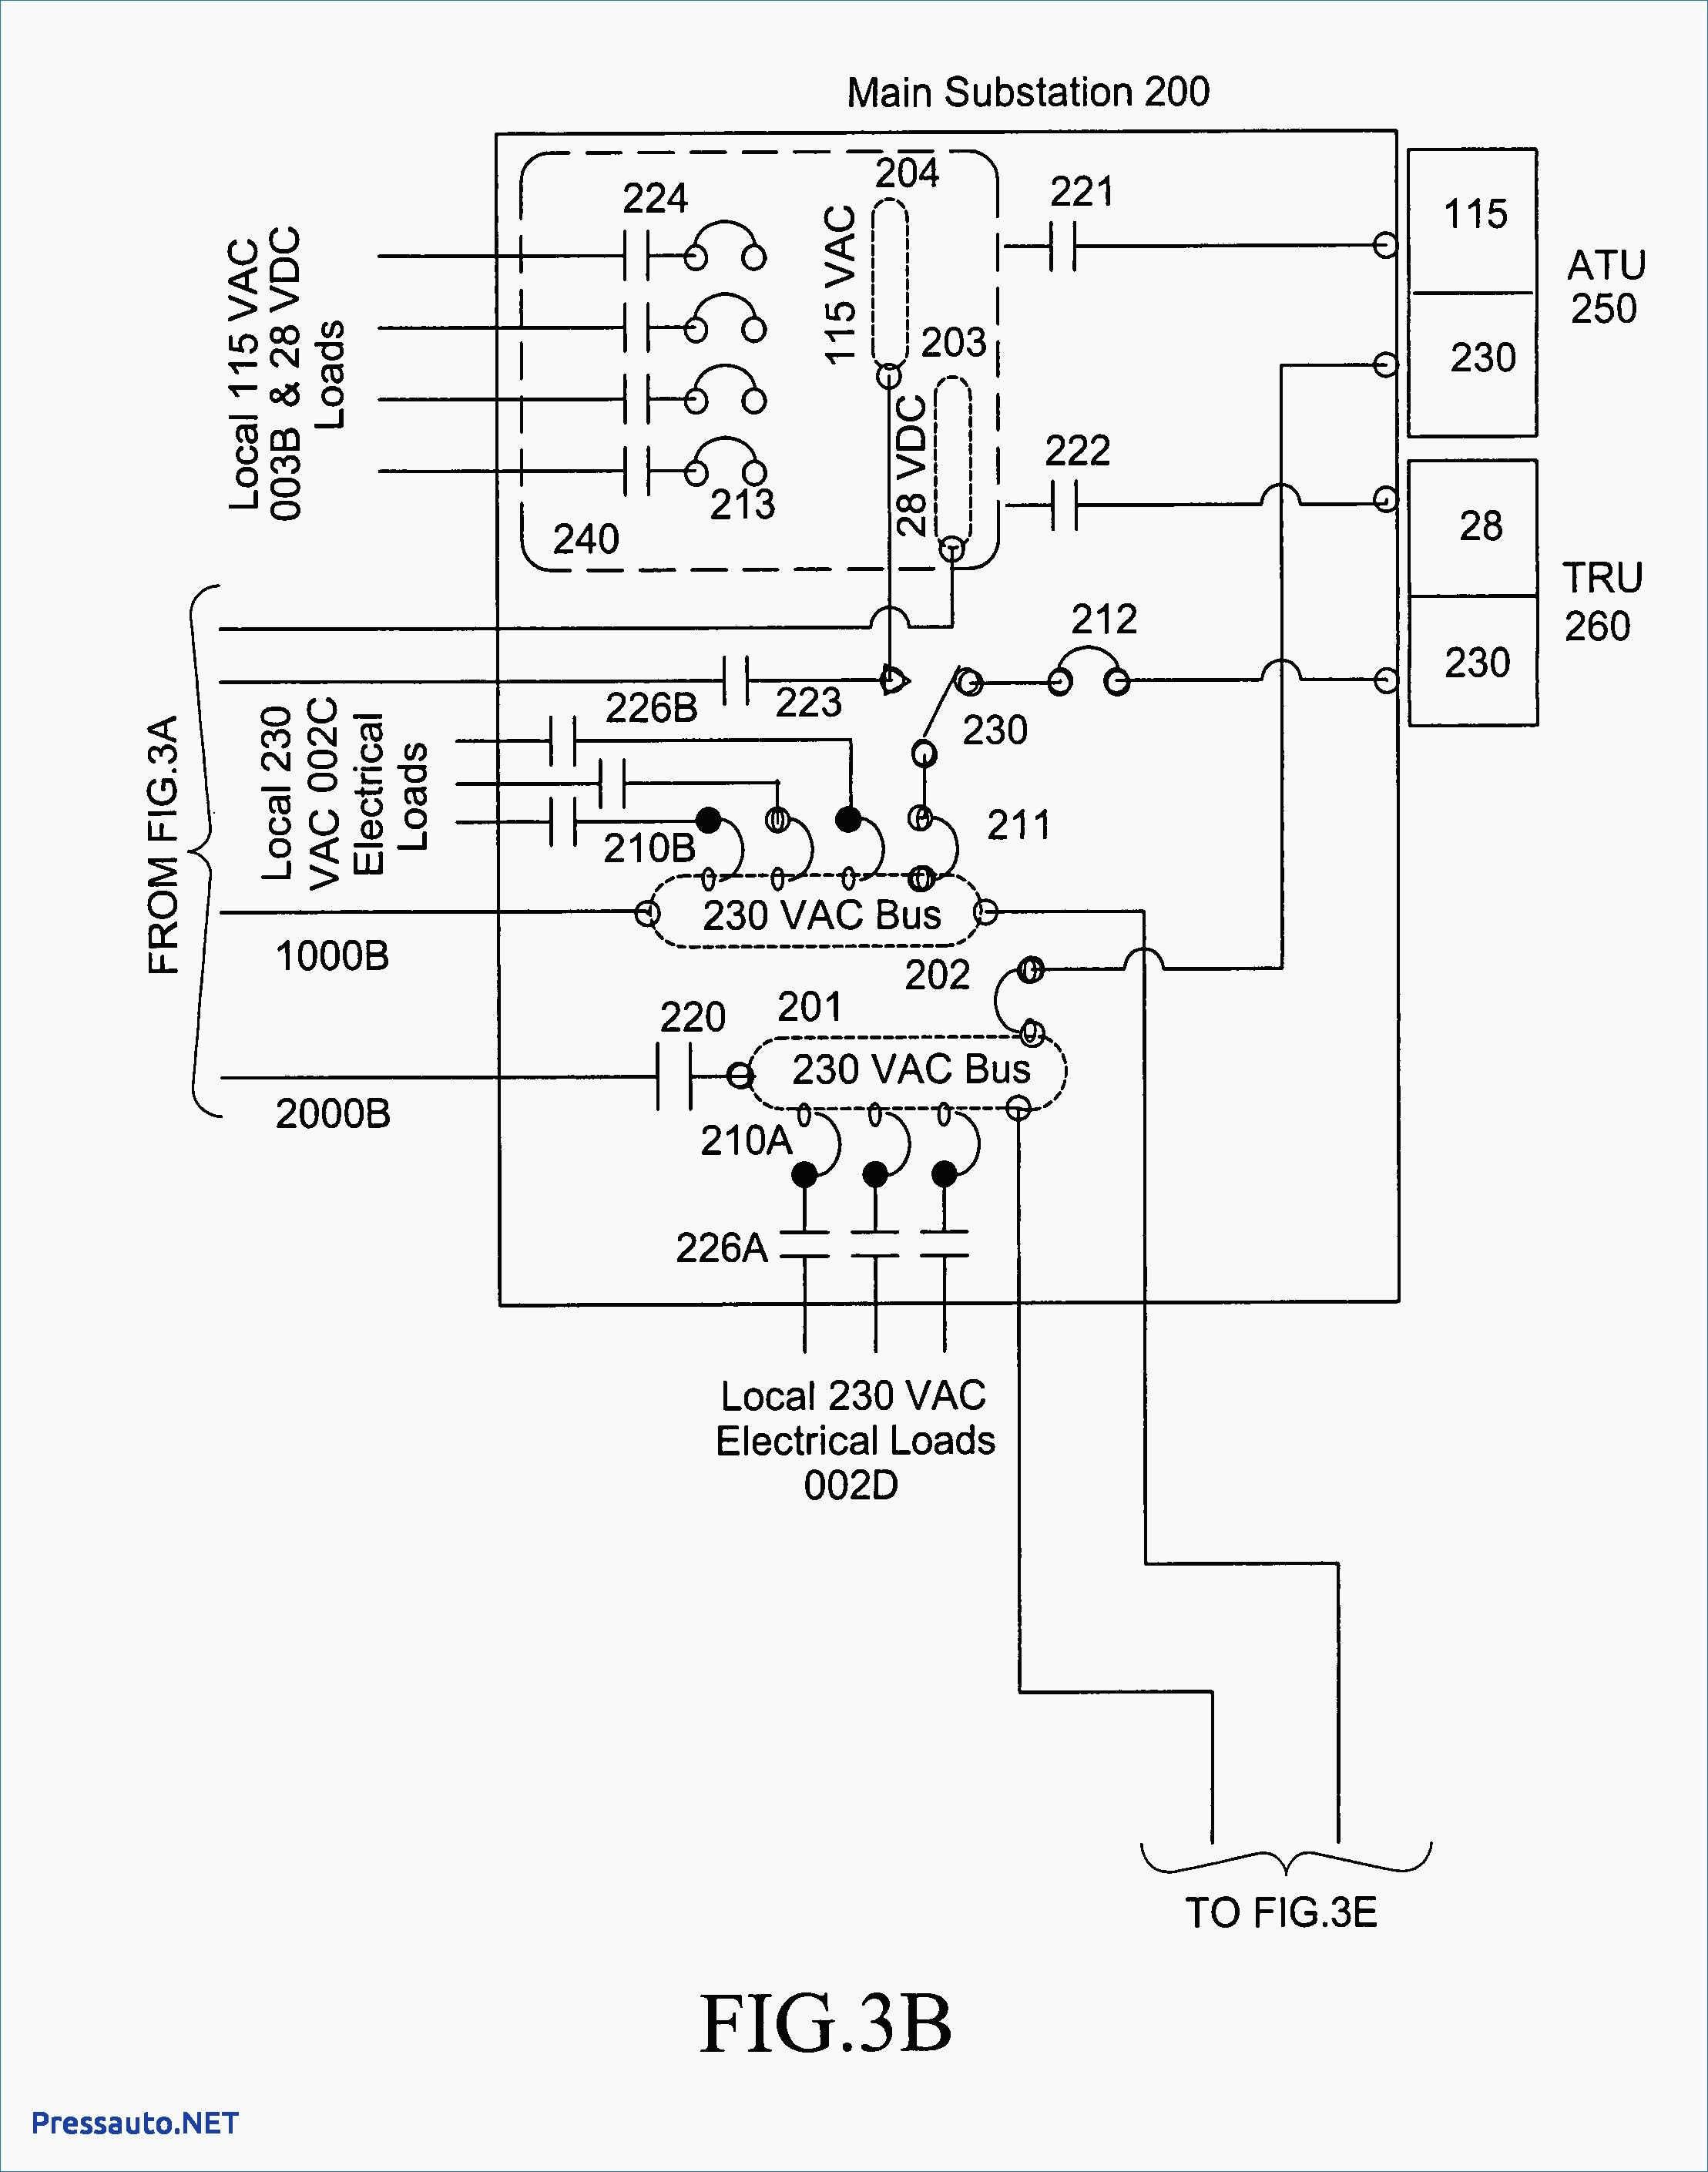 WRG-5568] Aprilaire 110 Wiring Diagram on aprilaire filters, aprilaire dehumidifier wiring diagram, aprilaire 800 wiring diagram, aprilaire 224 wiring diagram, aprilaire 600 wiring diagram, aprilaire wiring connection, aprilaire 7 00a wiring-diagram, aprilaire 500 wiring to furnace, aprilaire 560 wiring diagram, aprilaire 110 wiring diagram, aprilaire relay diagram, aprilaire 500 wiring diagram, aprilaire thermostat wiring diagram, aprilaire furnace wire harness to old, aprilaire 4655 wiring,